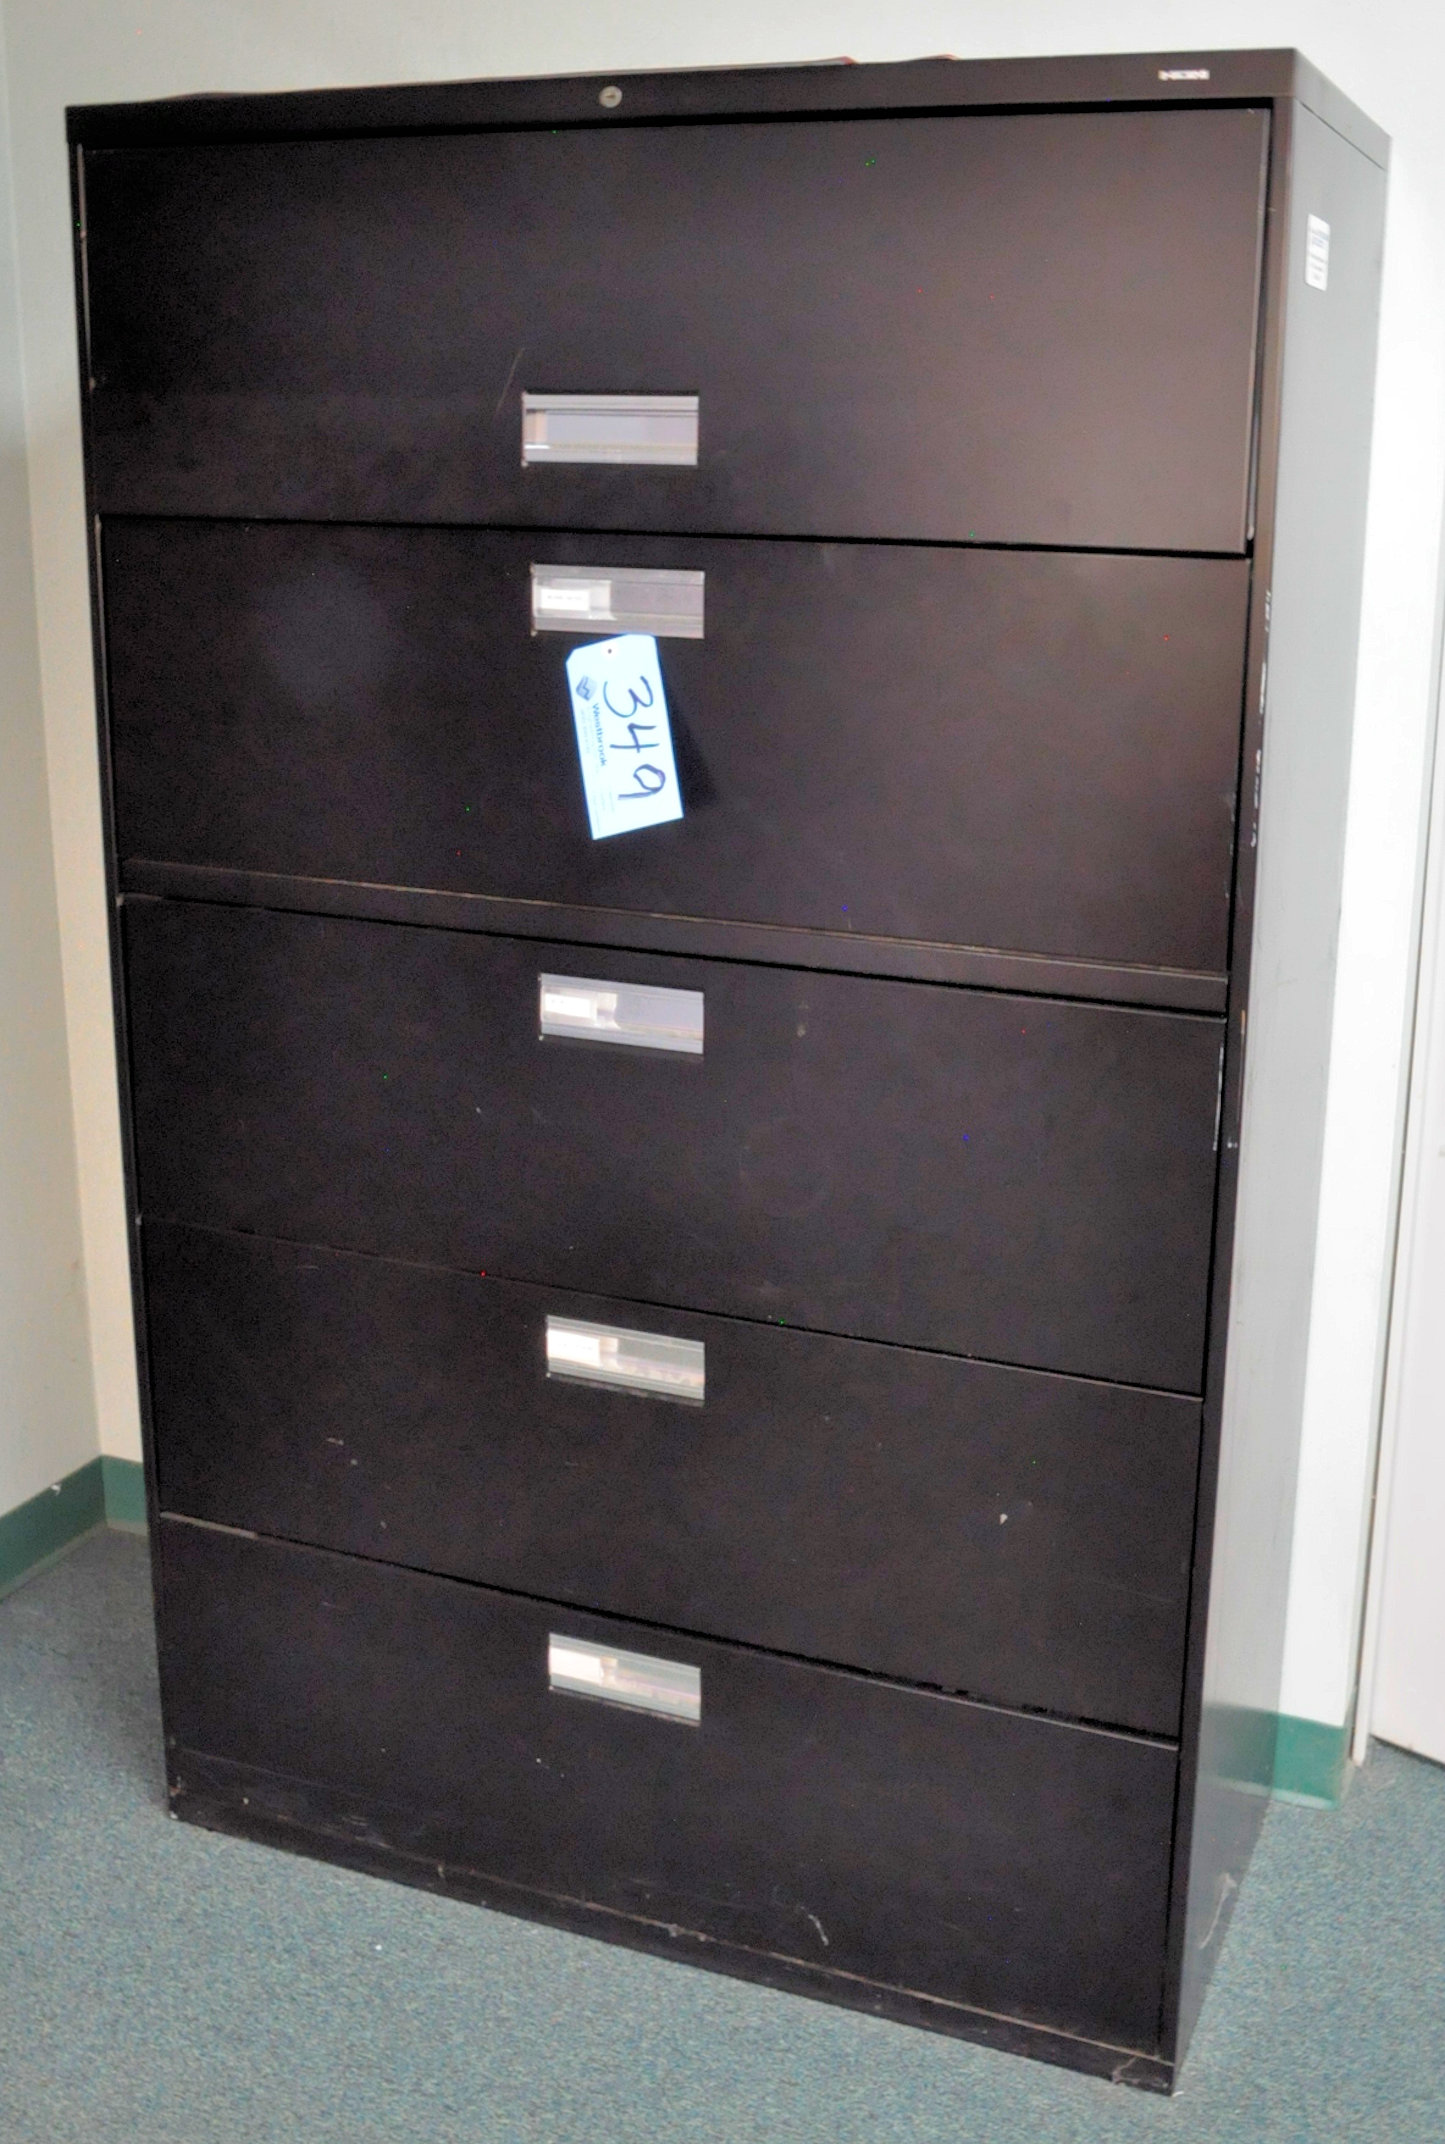 Modular Office Desk System with (2) Chairs and Lateral File Cabinet, - Image 2 of 2